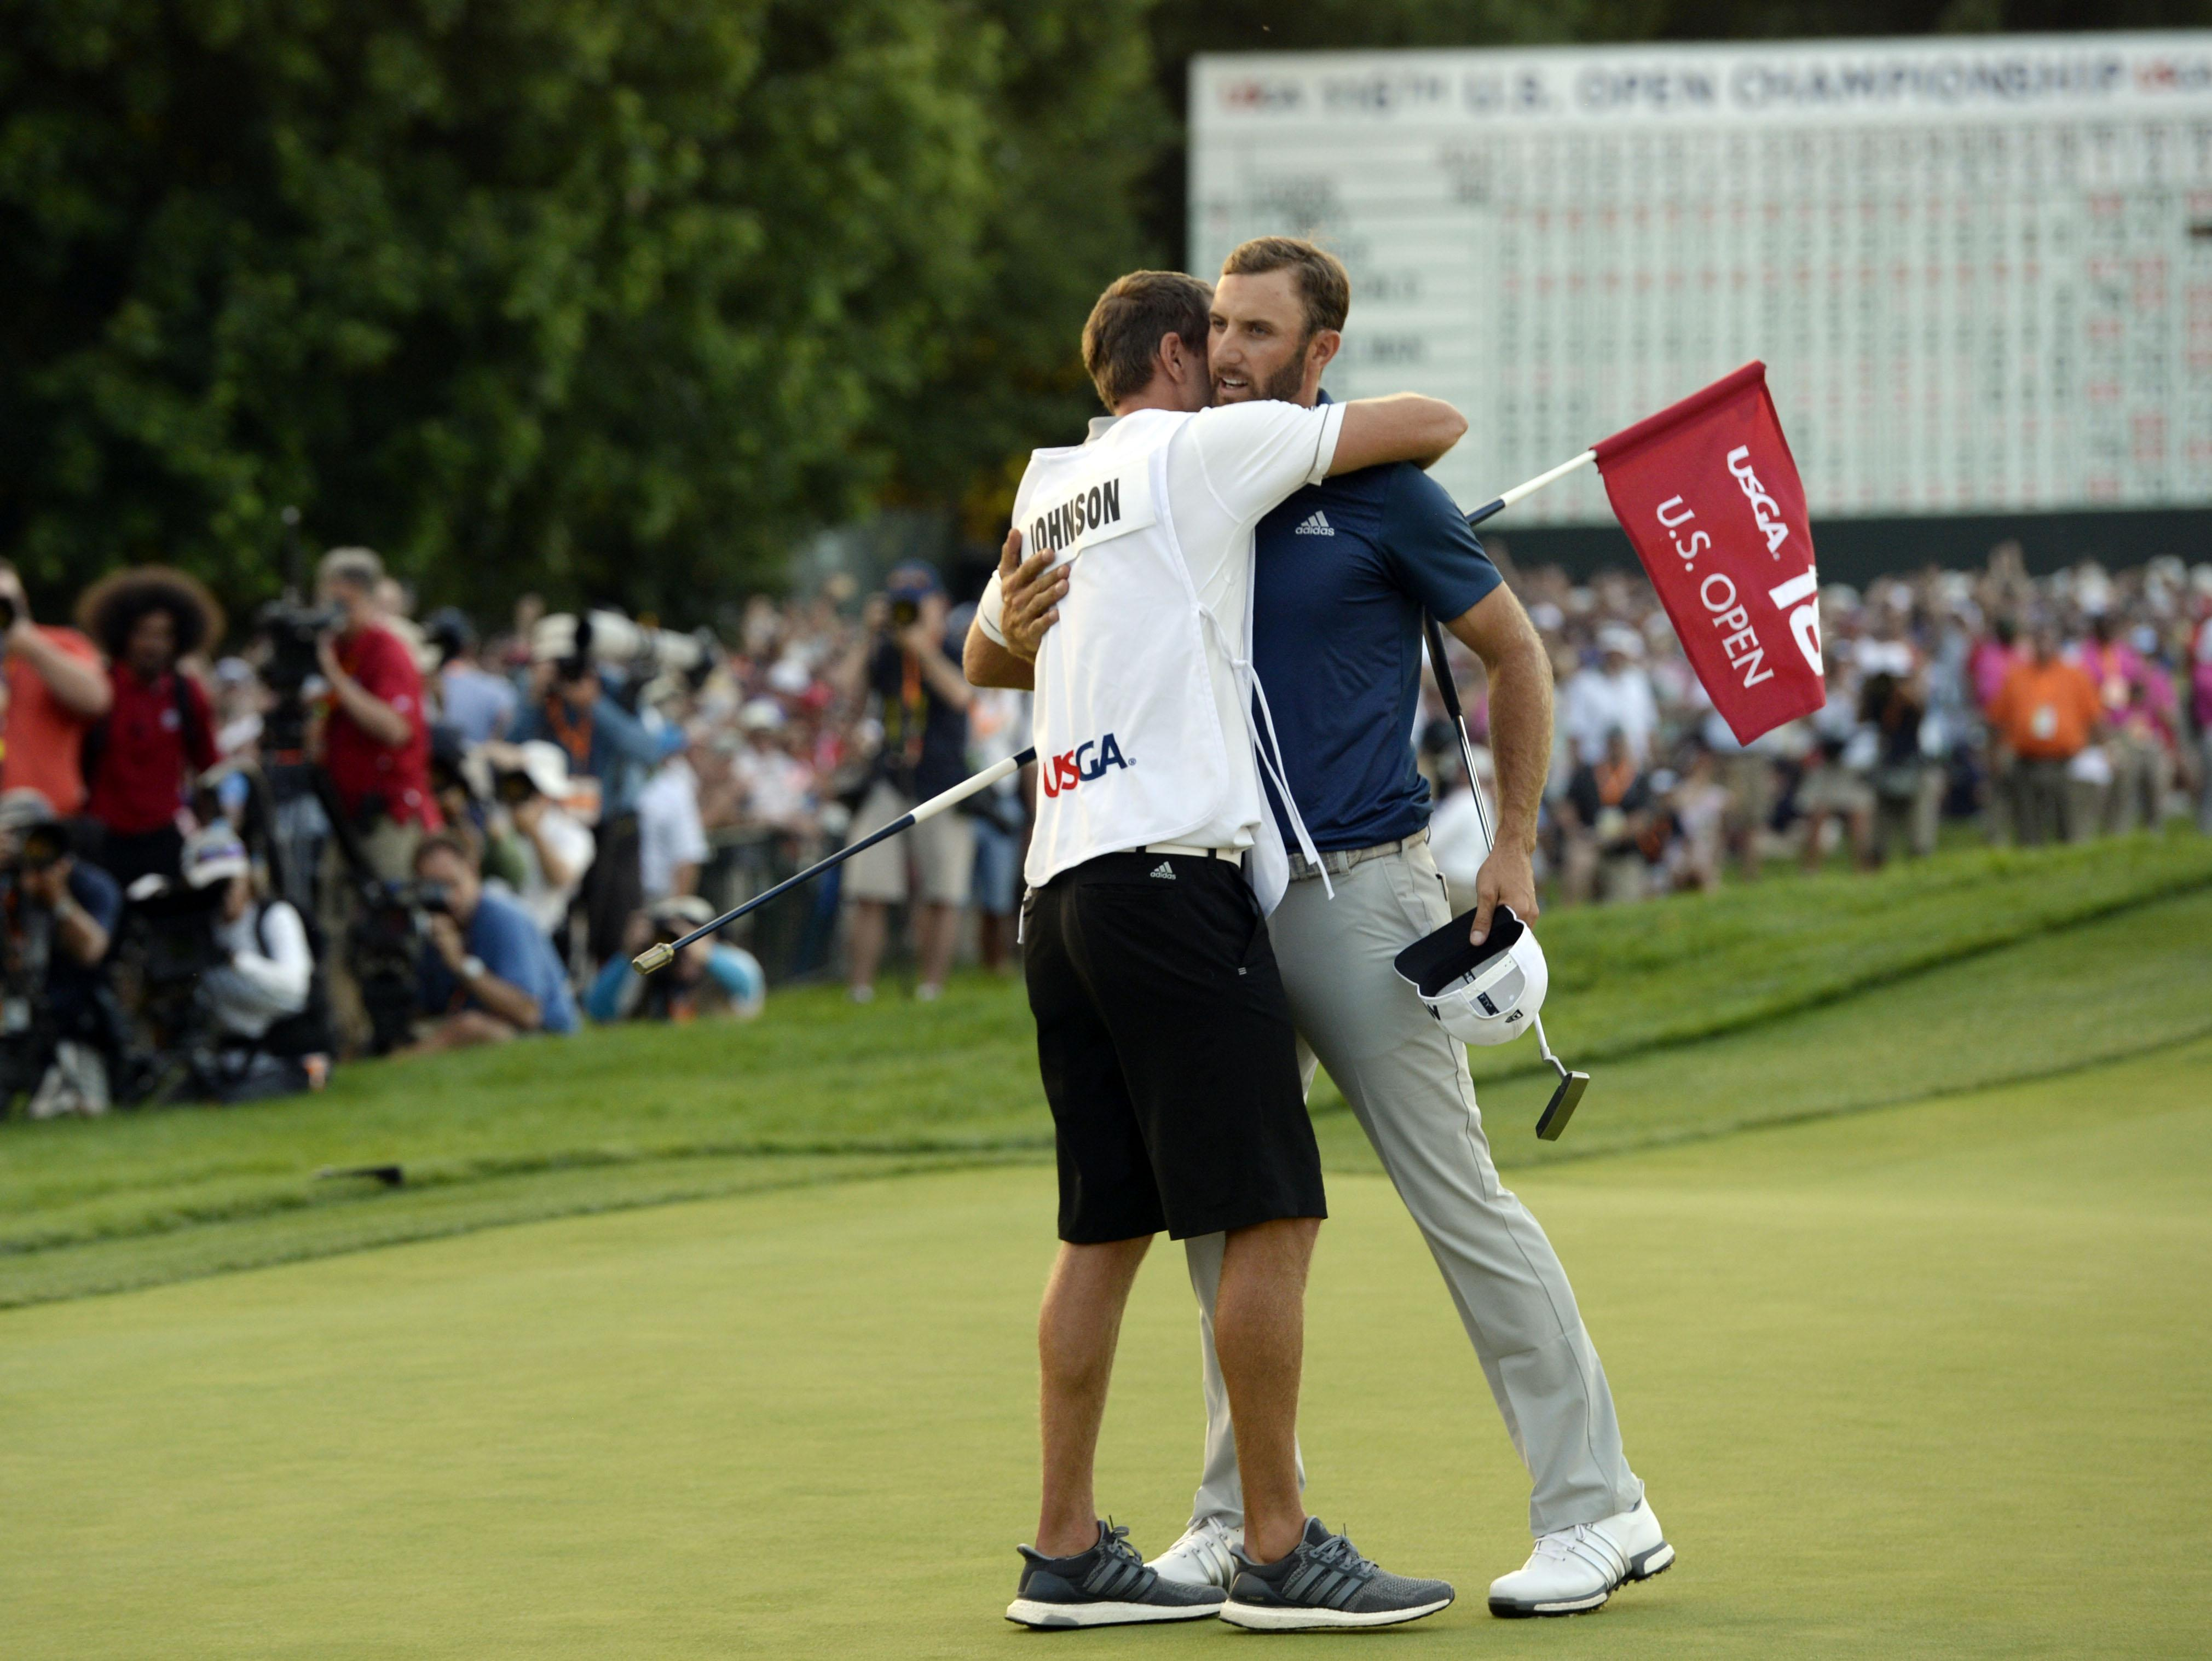 The pair worked together when Dustin won the 2016 US Open at Oakmont